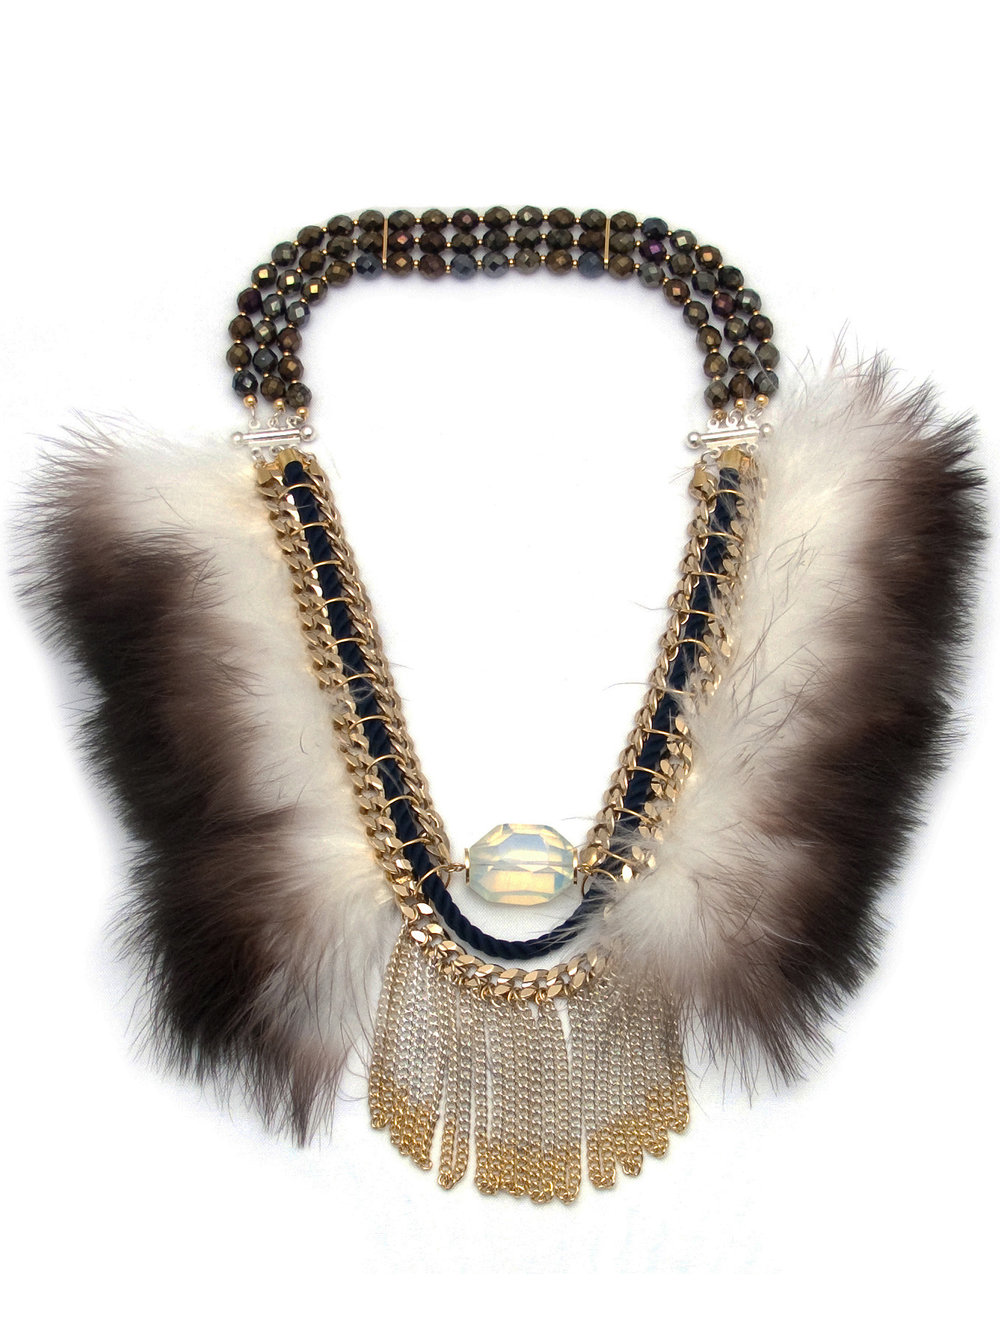 018 Feather Fringe Necklace.jpg